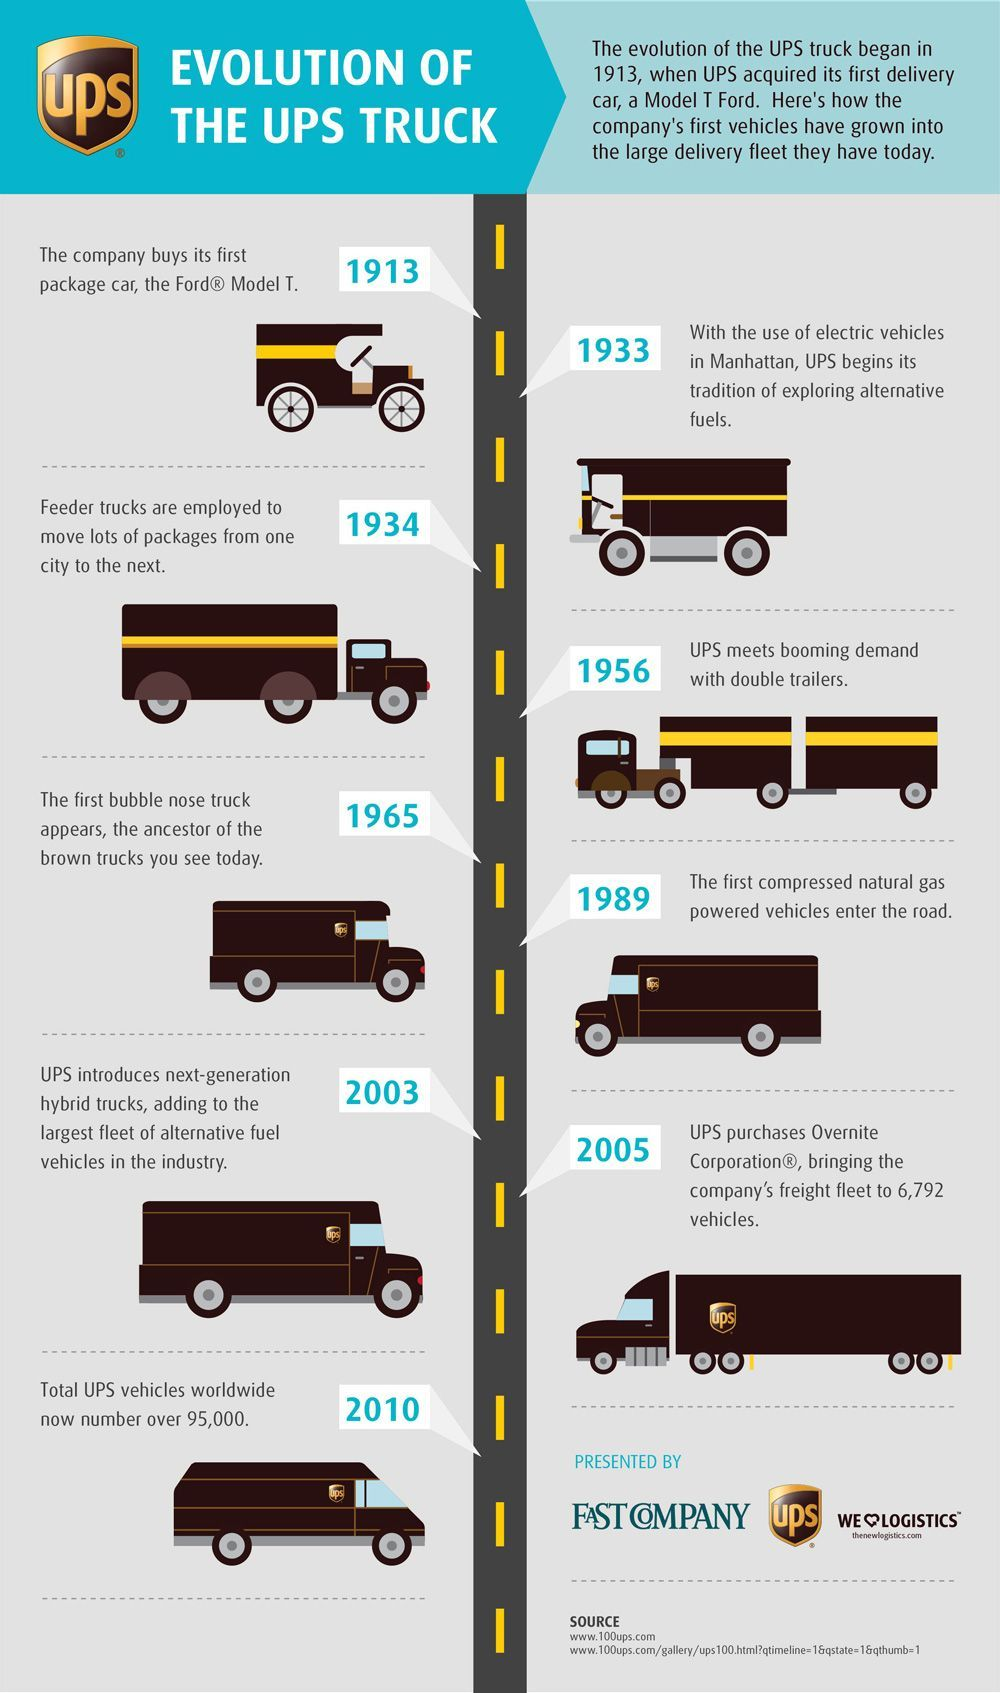 Pin by CK on SUPPLY CHAIN Logistics transportation